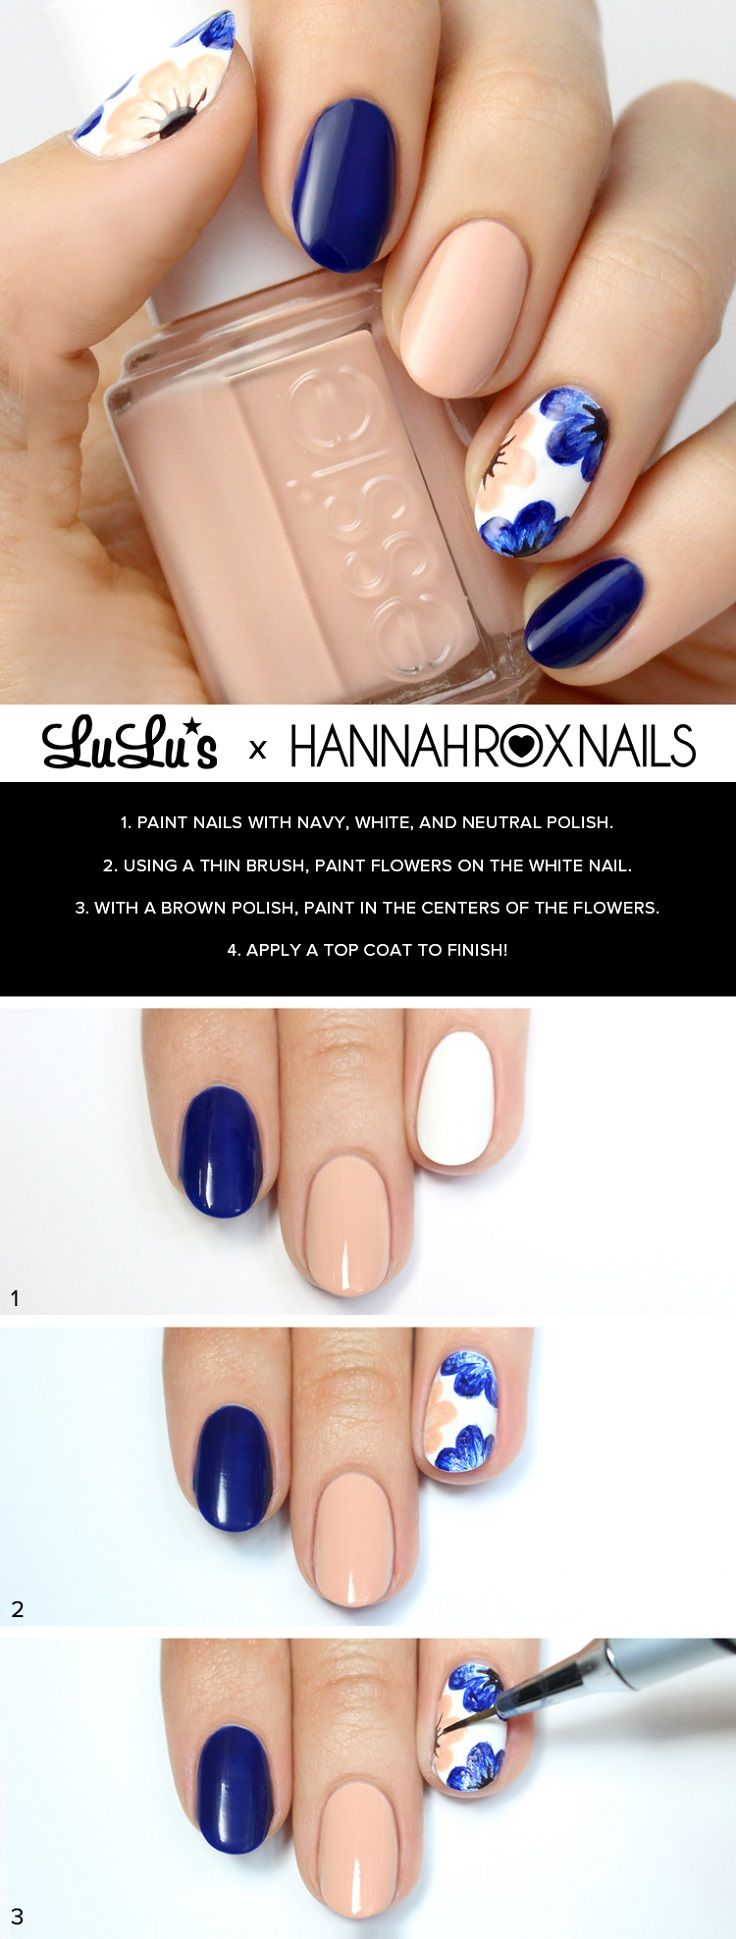 Nude and Navy Blue Floral Nail Tutorial - 15 Color Block Nail Art Tutorials for Summer 2015 | GleamItUp